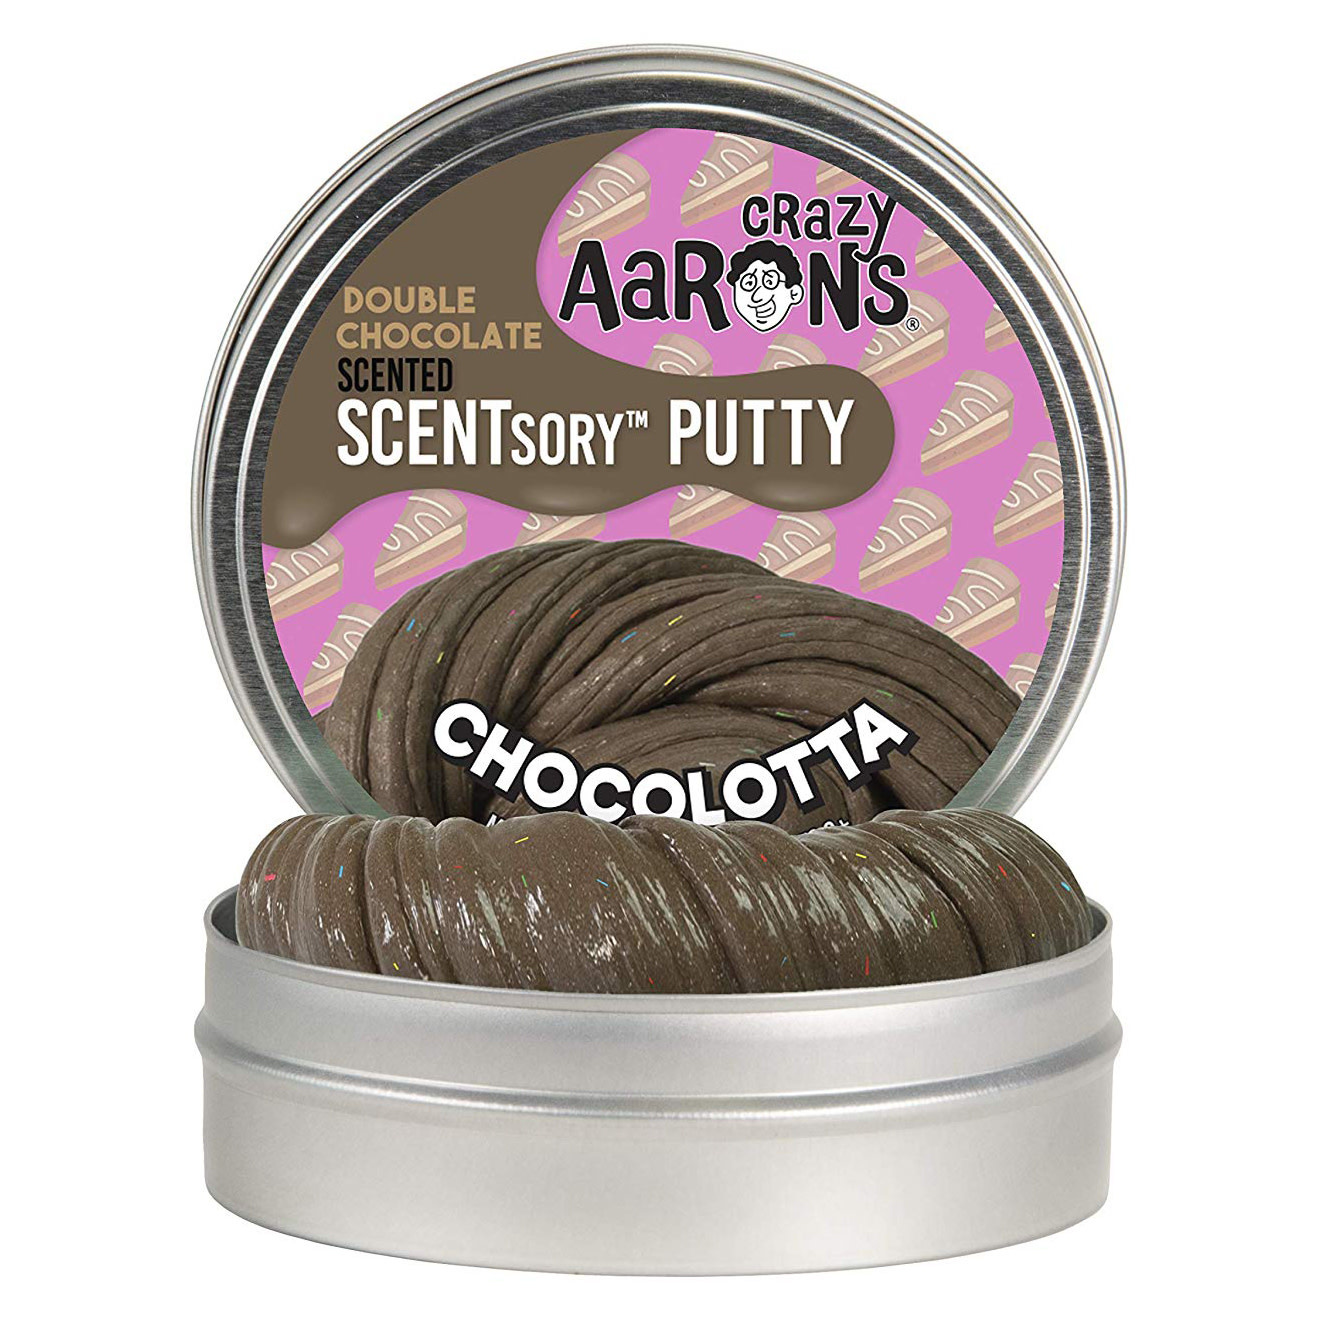 Crazy Aaron Crazy Aaron's Thinking Putty SCENTSory Chocolotta 2.75""